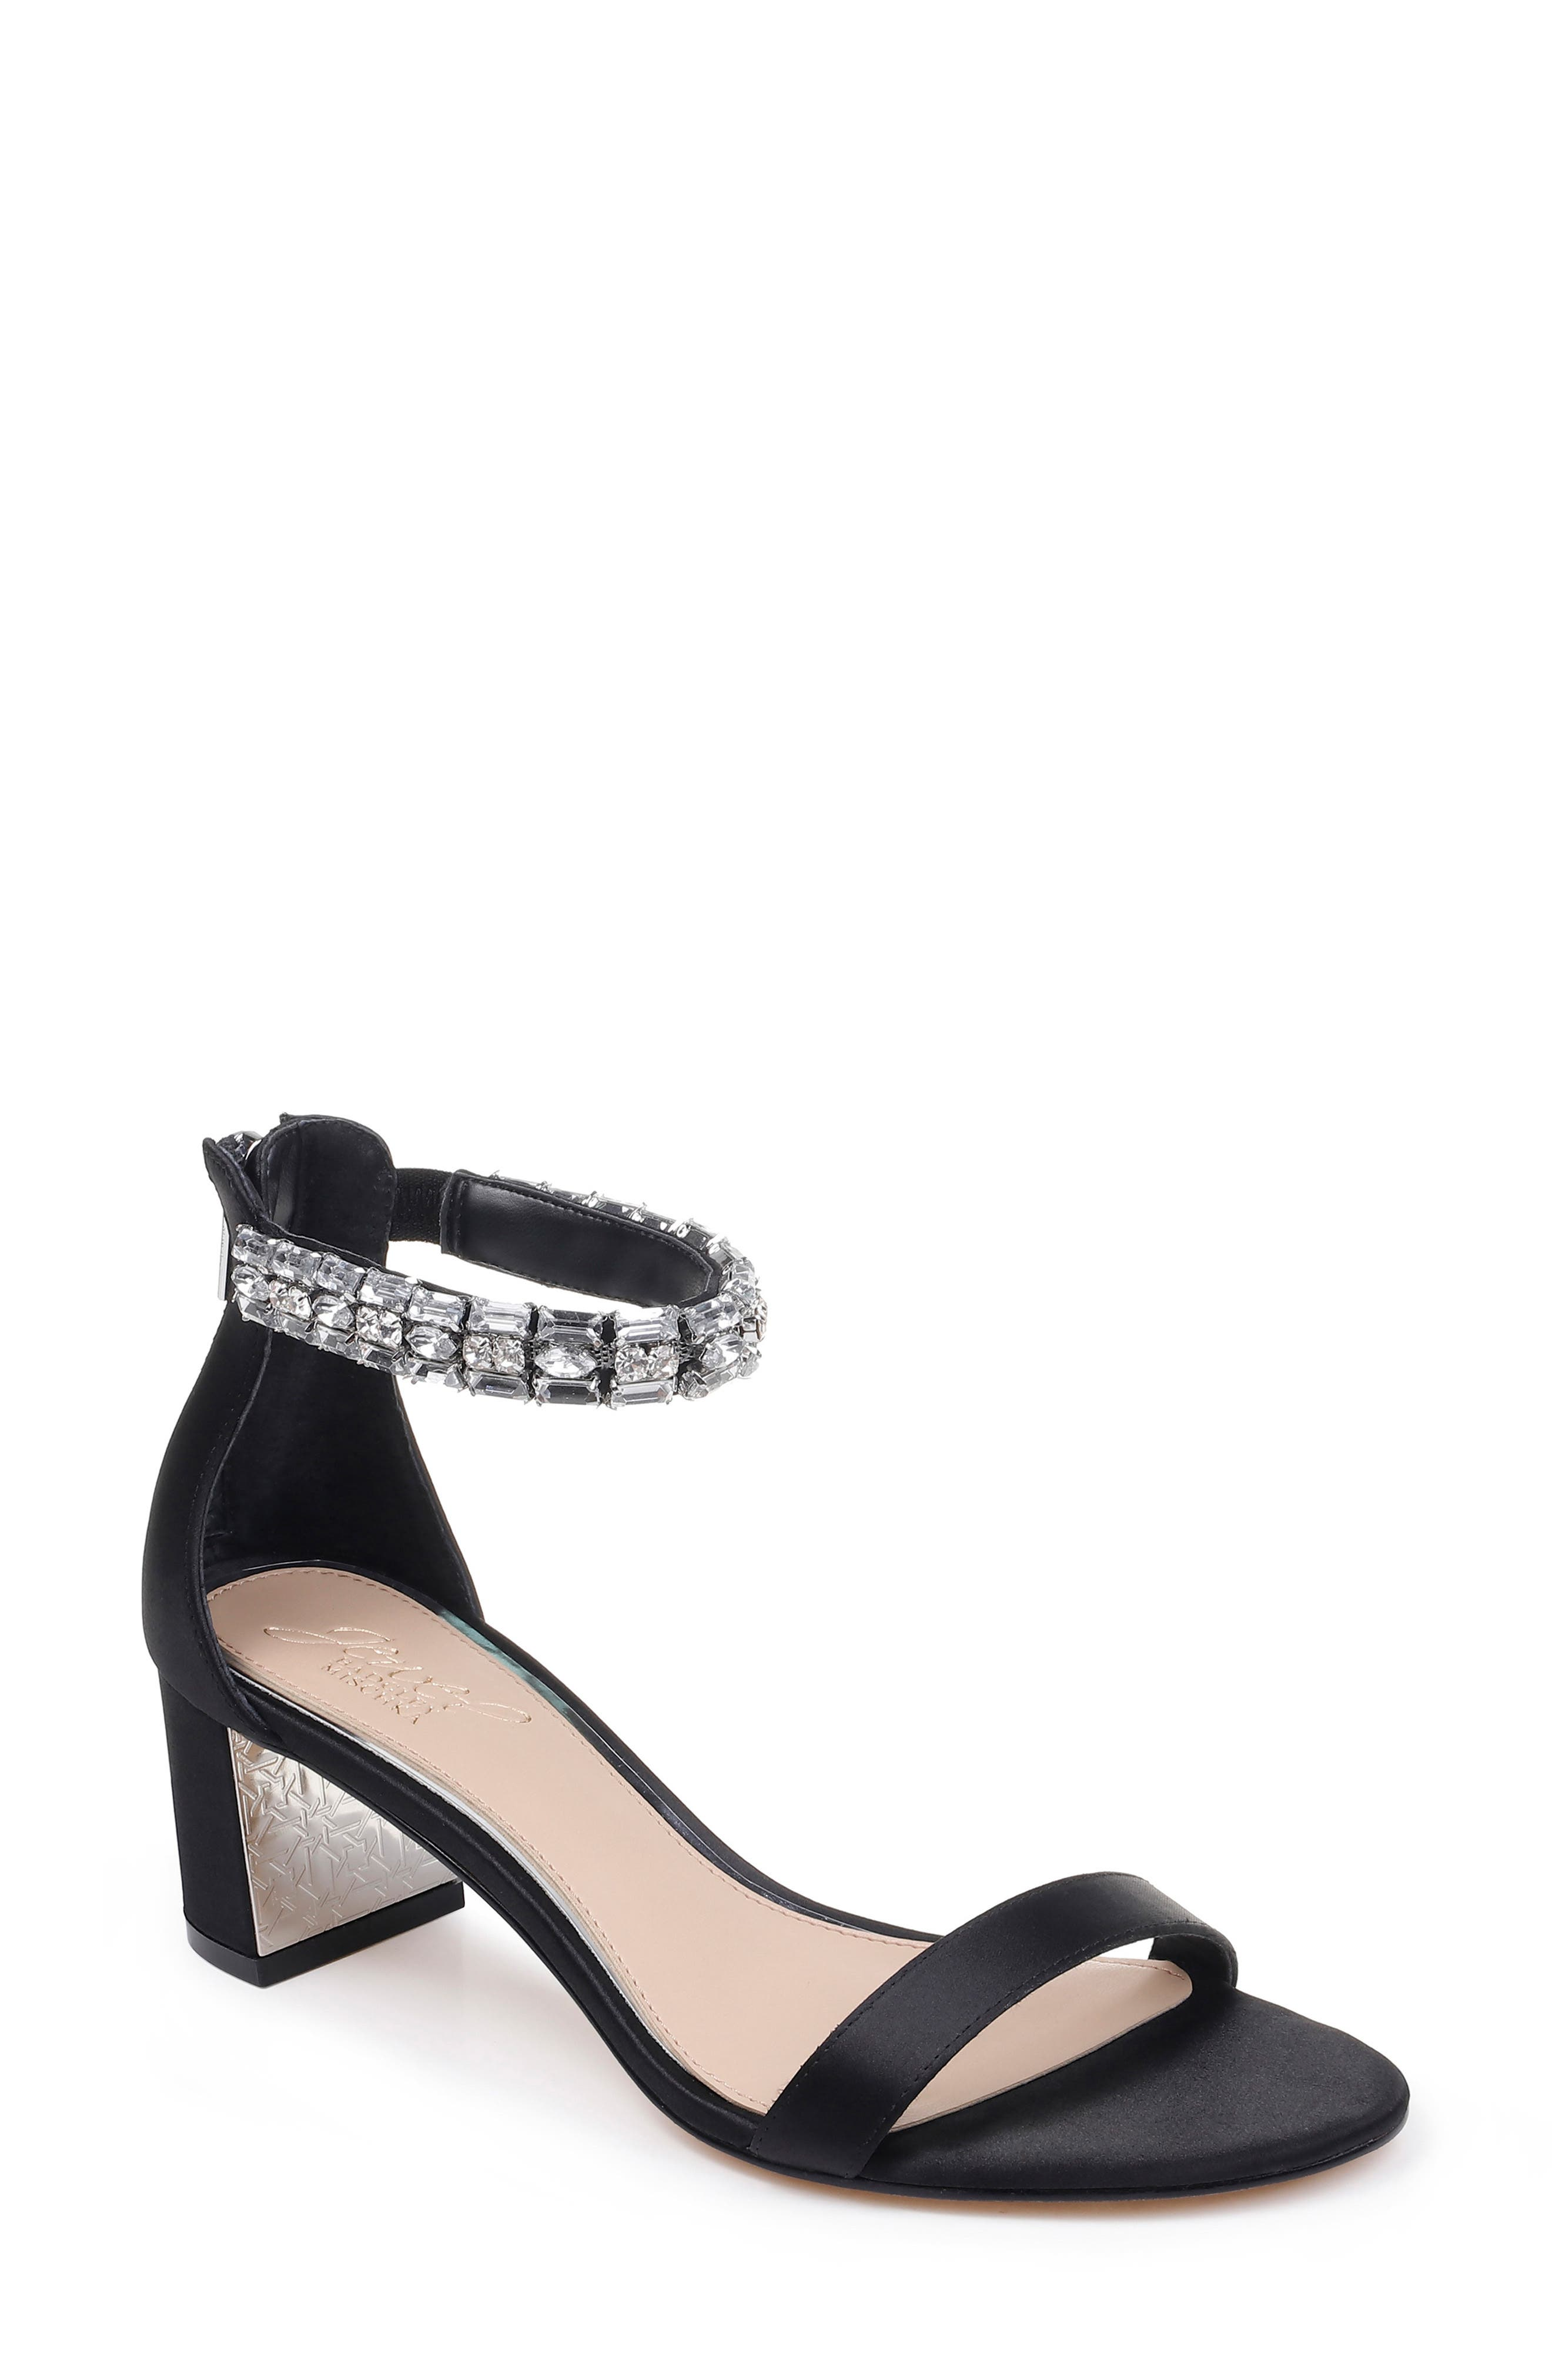 JEWEL BADGLEY MISCHKA, Katerina Ankle Strap Sandal, Main thumbnail 1, color, BLACK CRYSTAL SATIN